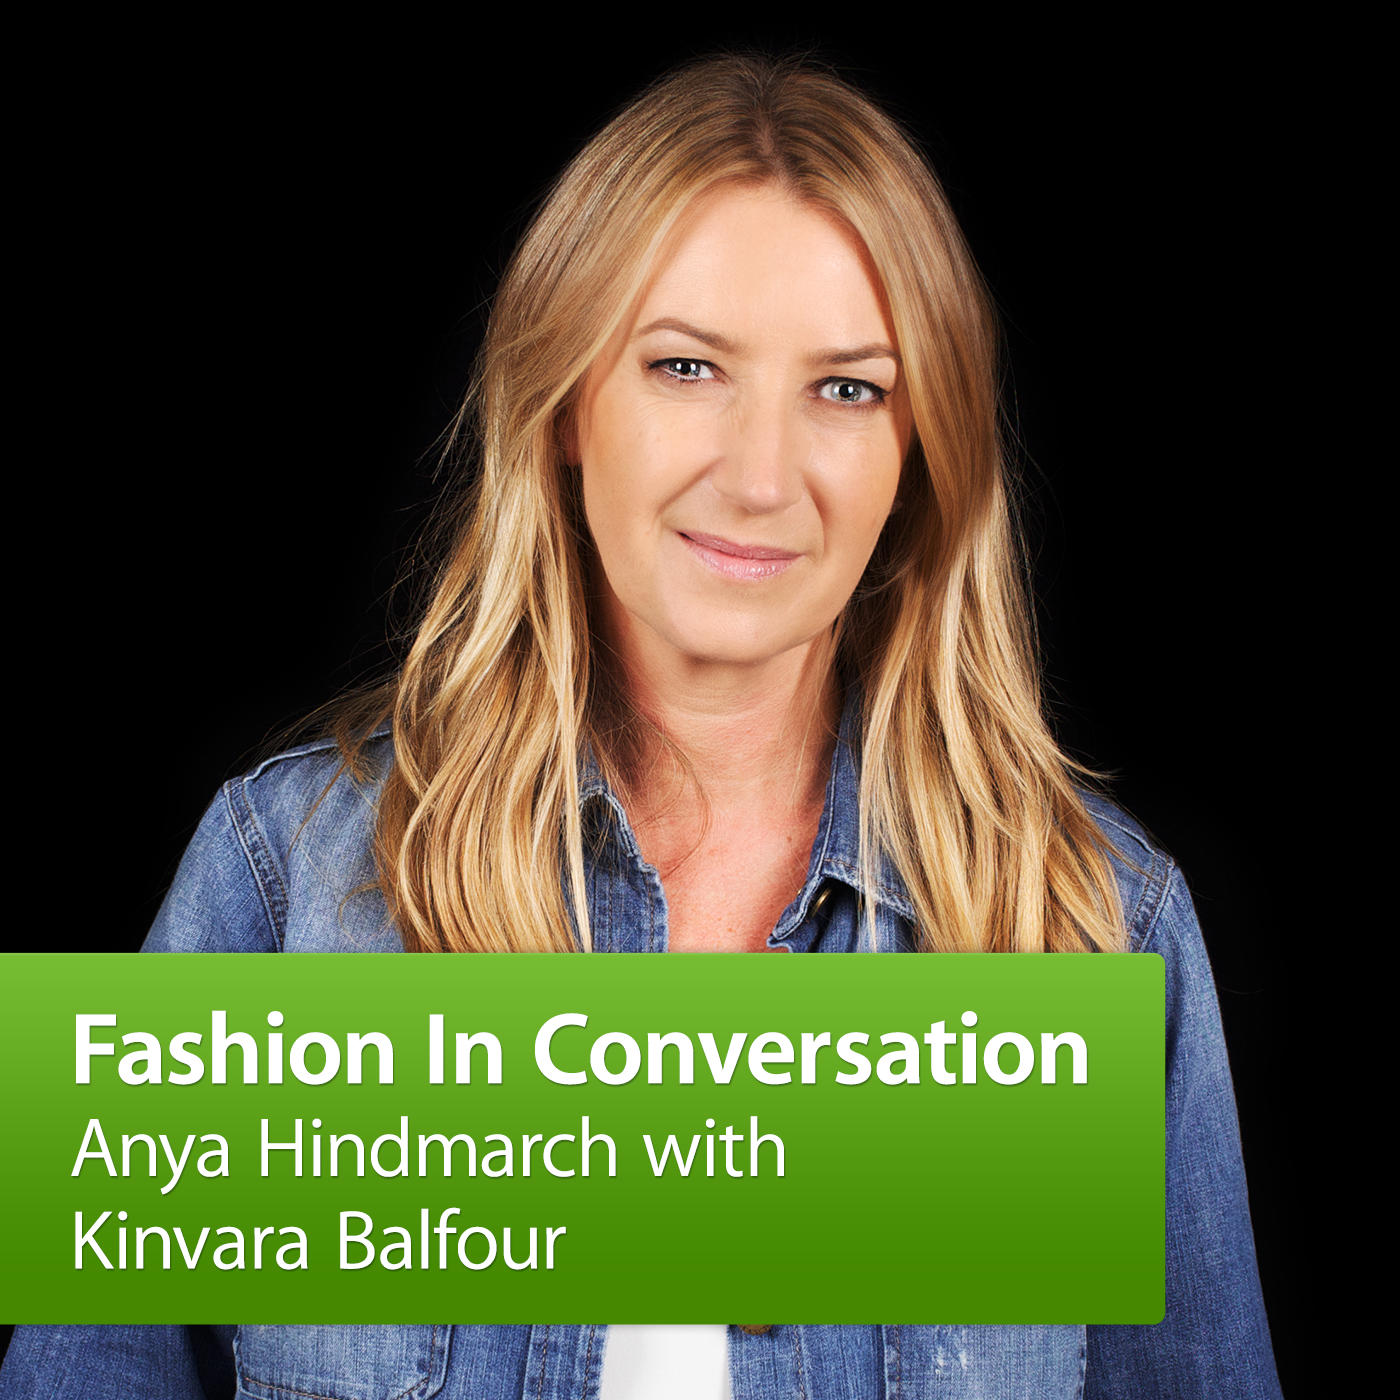 Anya Hindmarch in Conversation with Kinvara Balfour